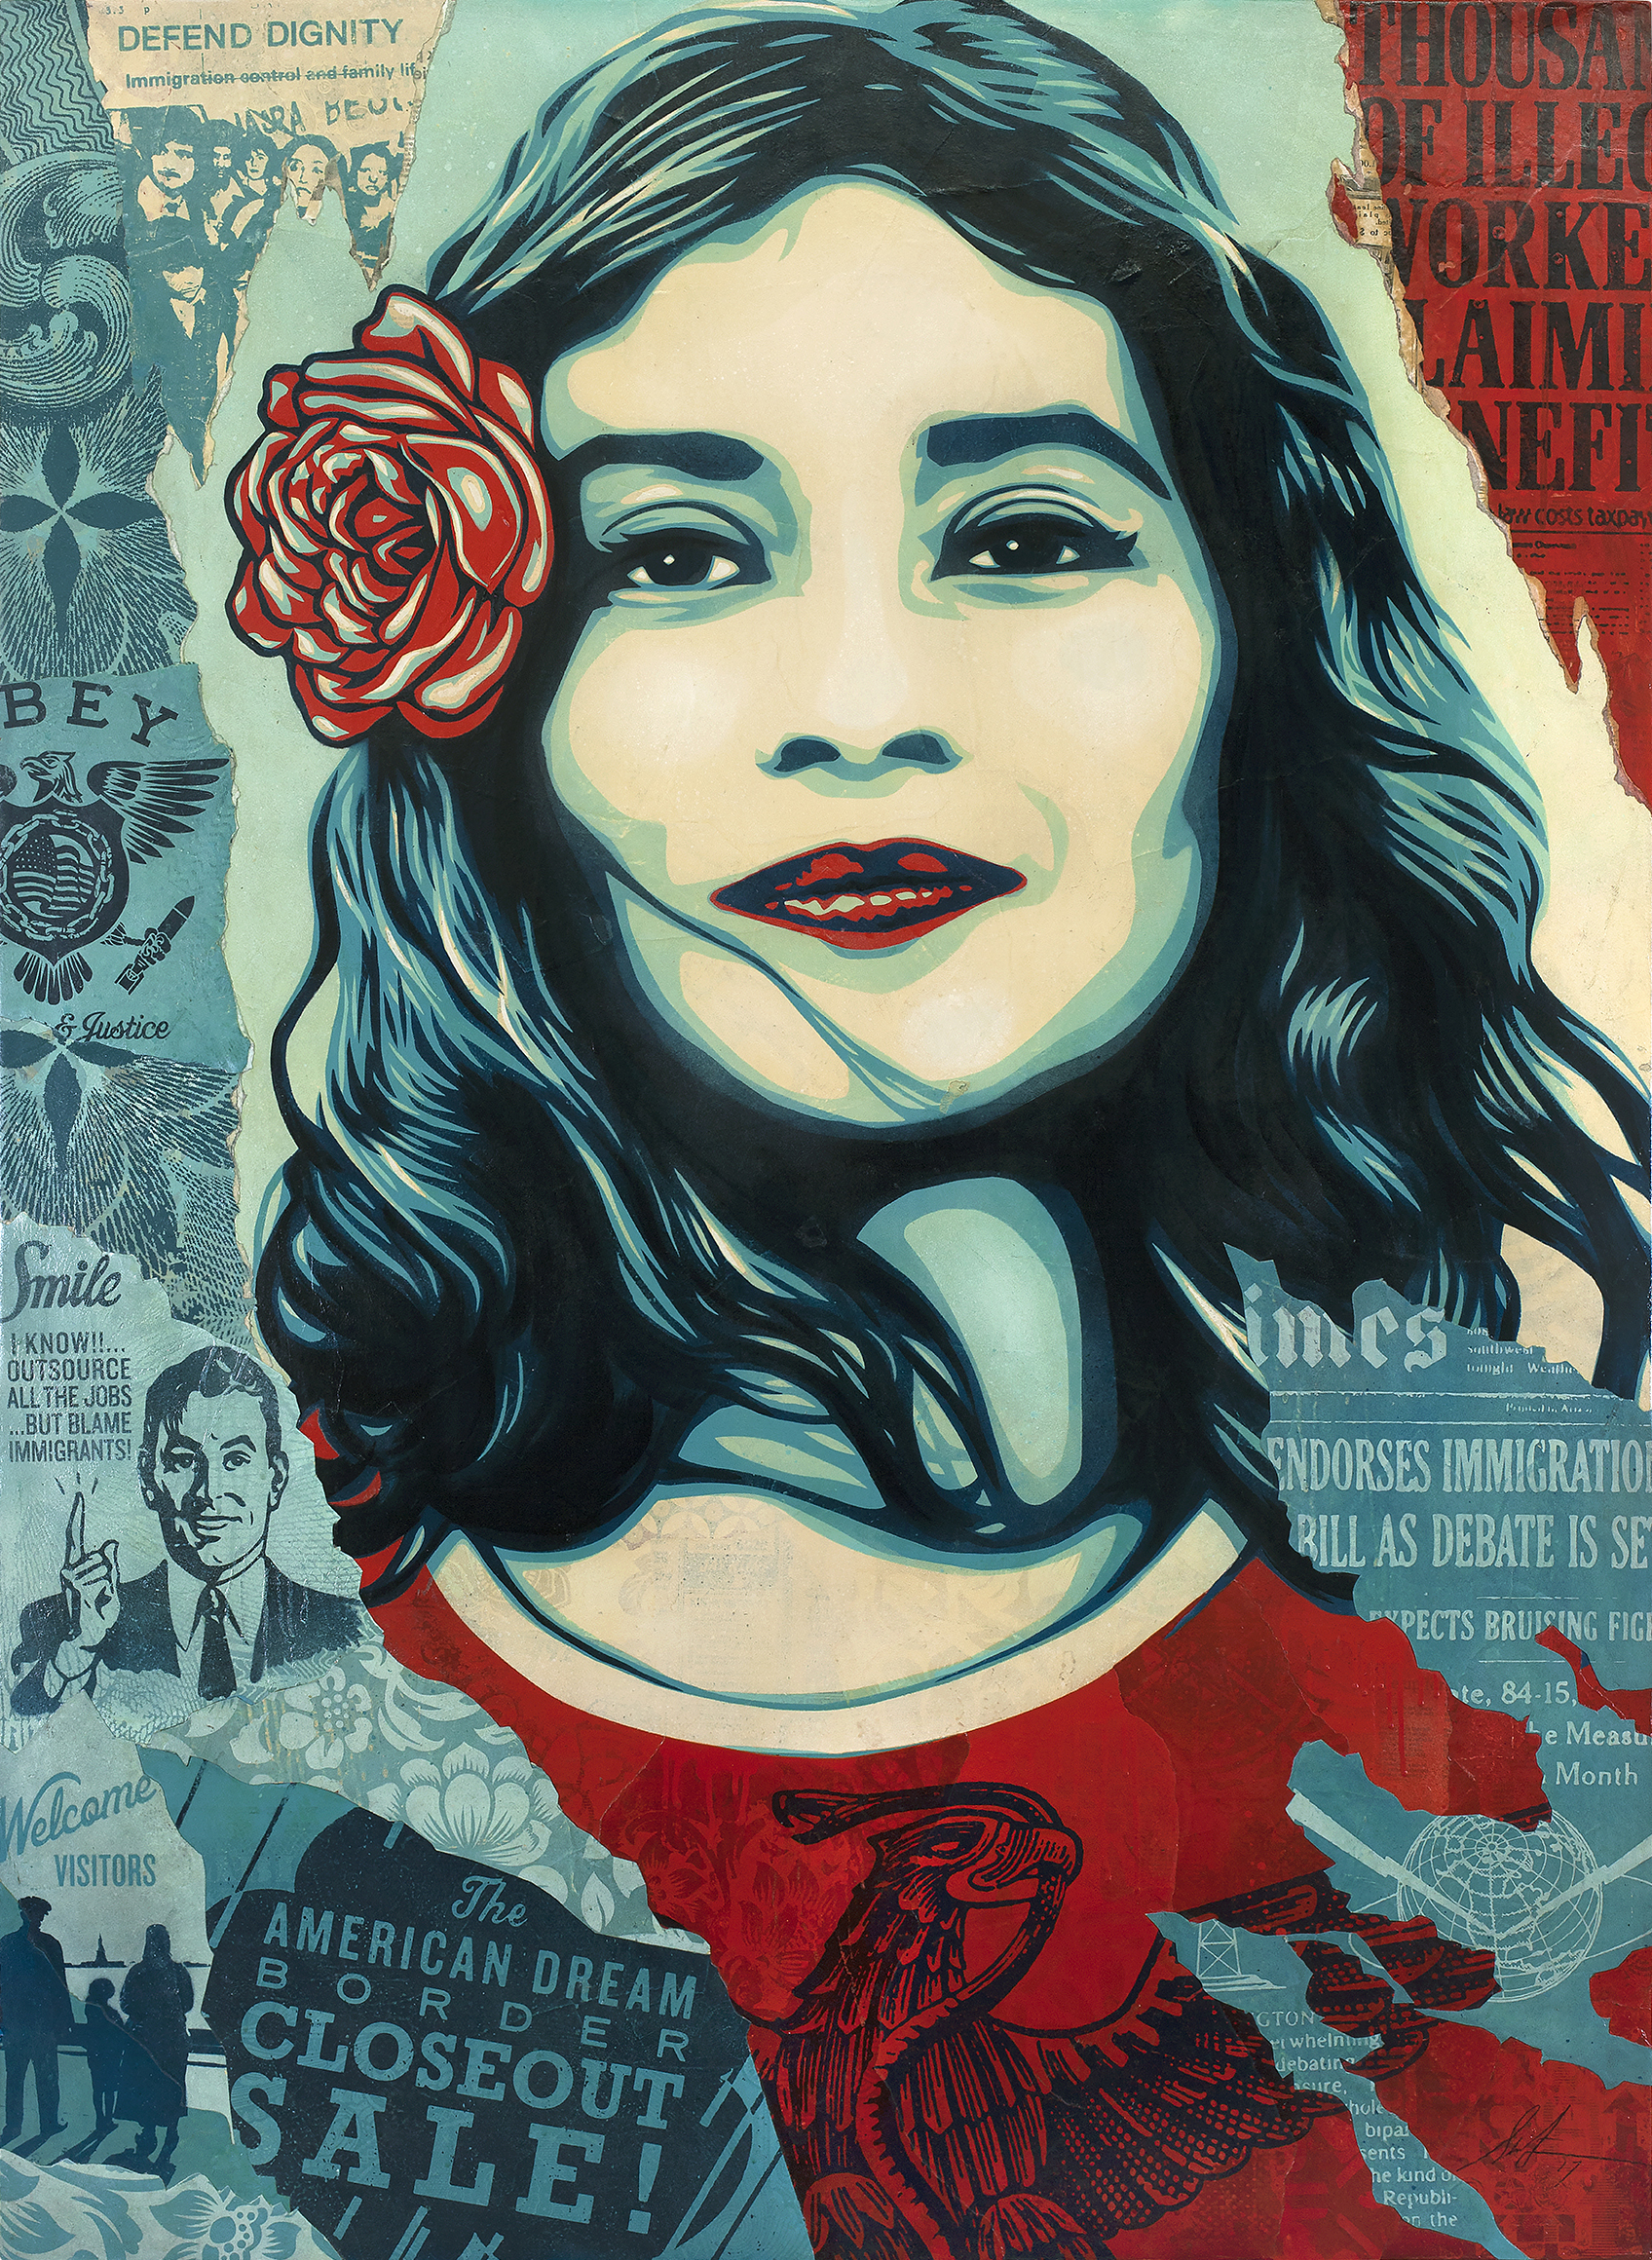 Shepard Fairey:   Defend Dignity , 2017 Mixed Media (Stencil, Silkscreen and Collage on Canvas) 60h x 44w inches